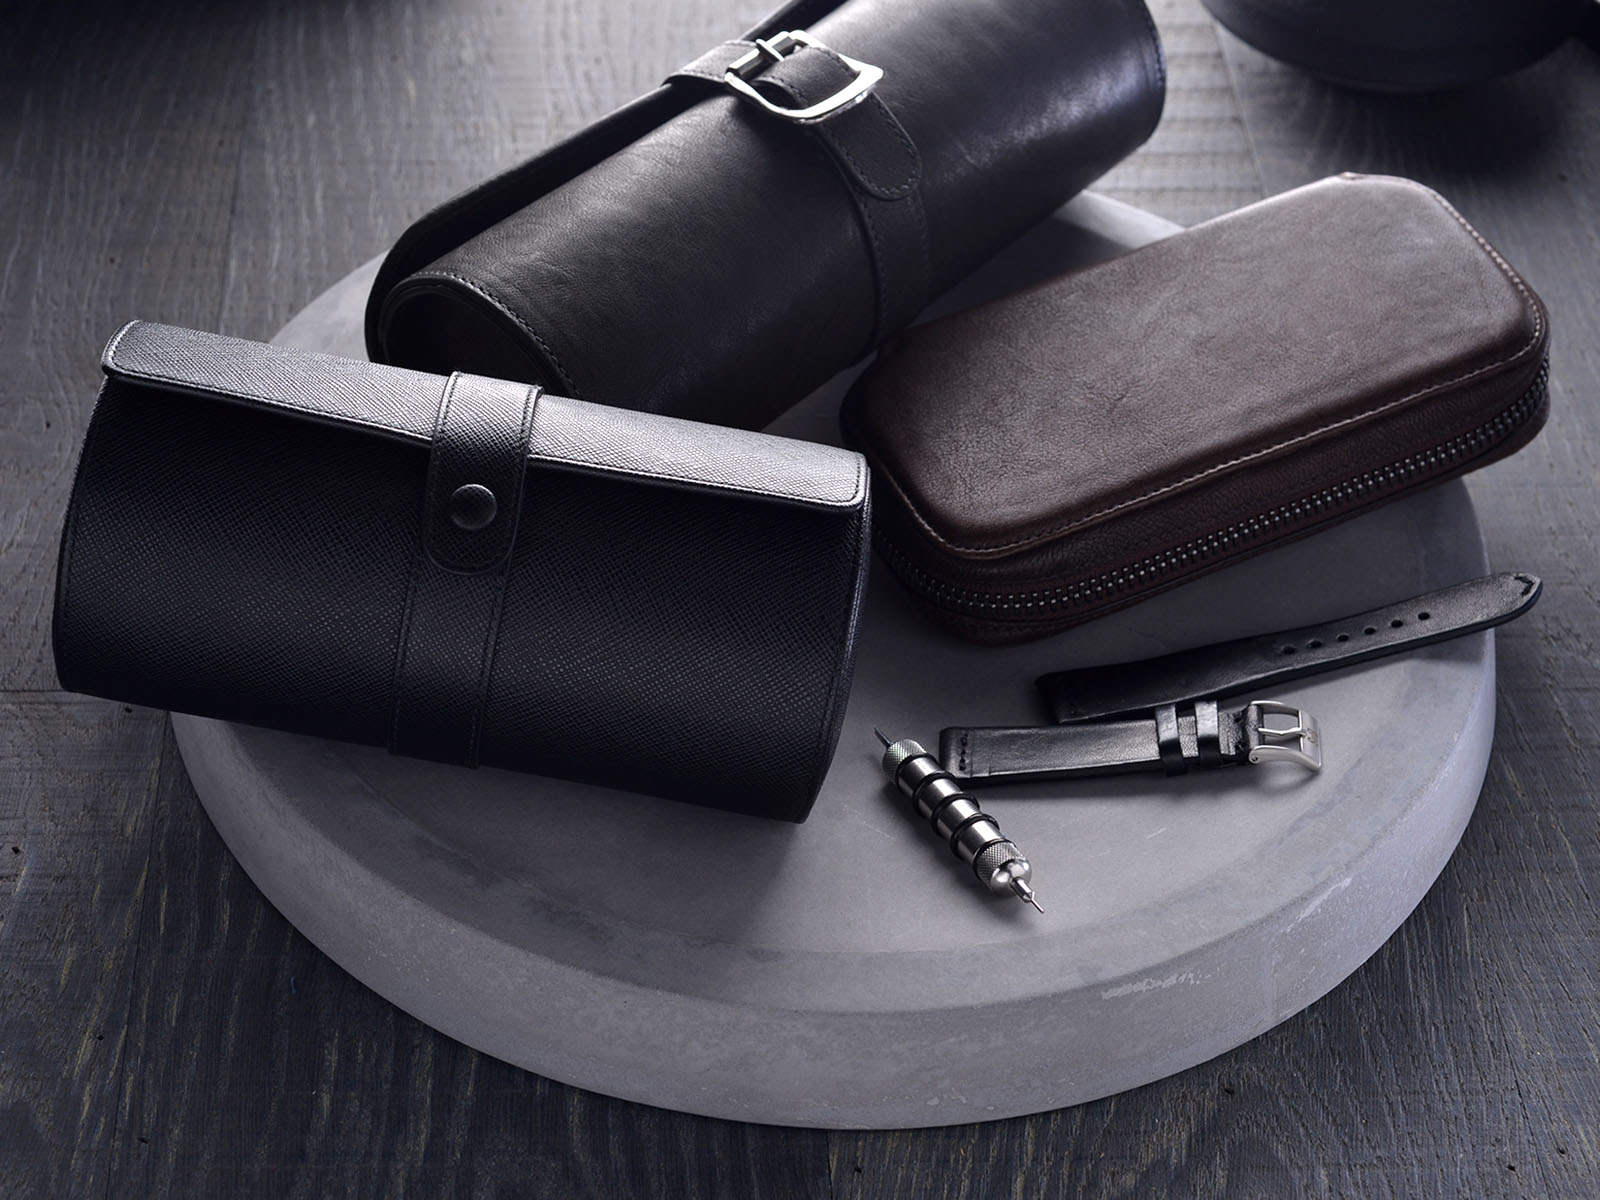 Travel Style - Watch Accessories for the Man on the Move